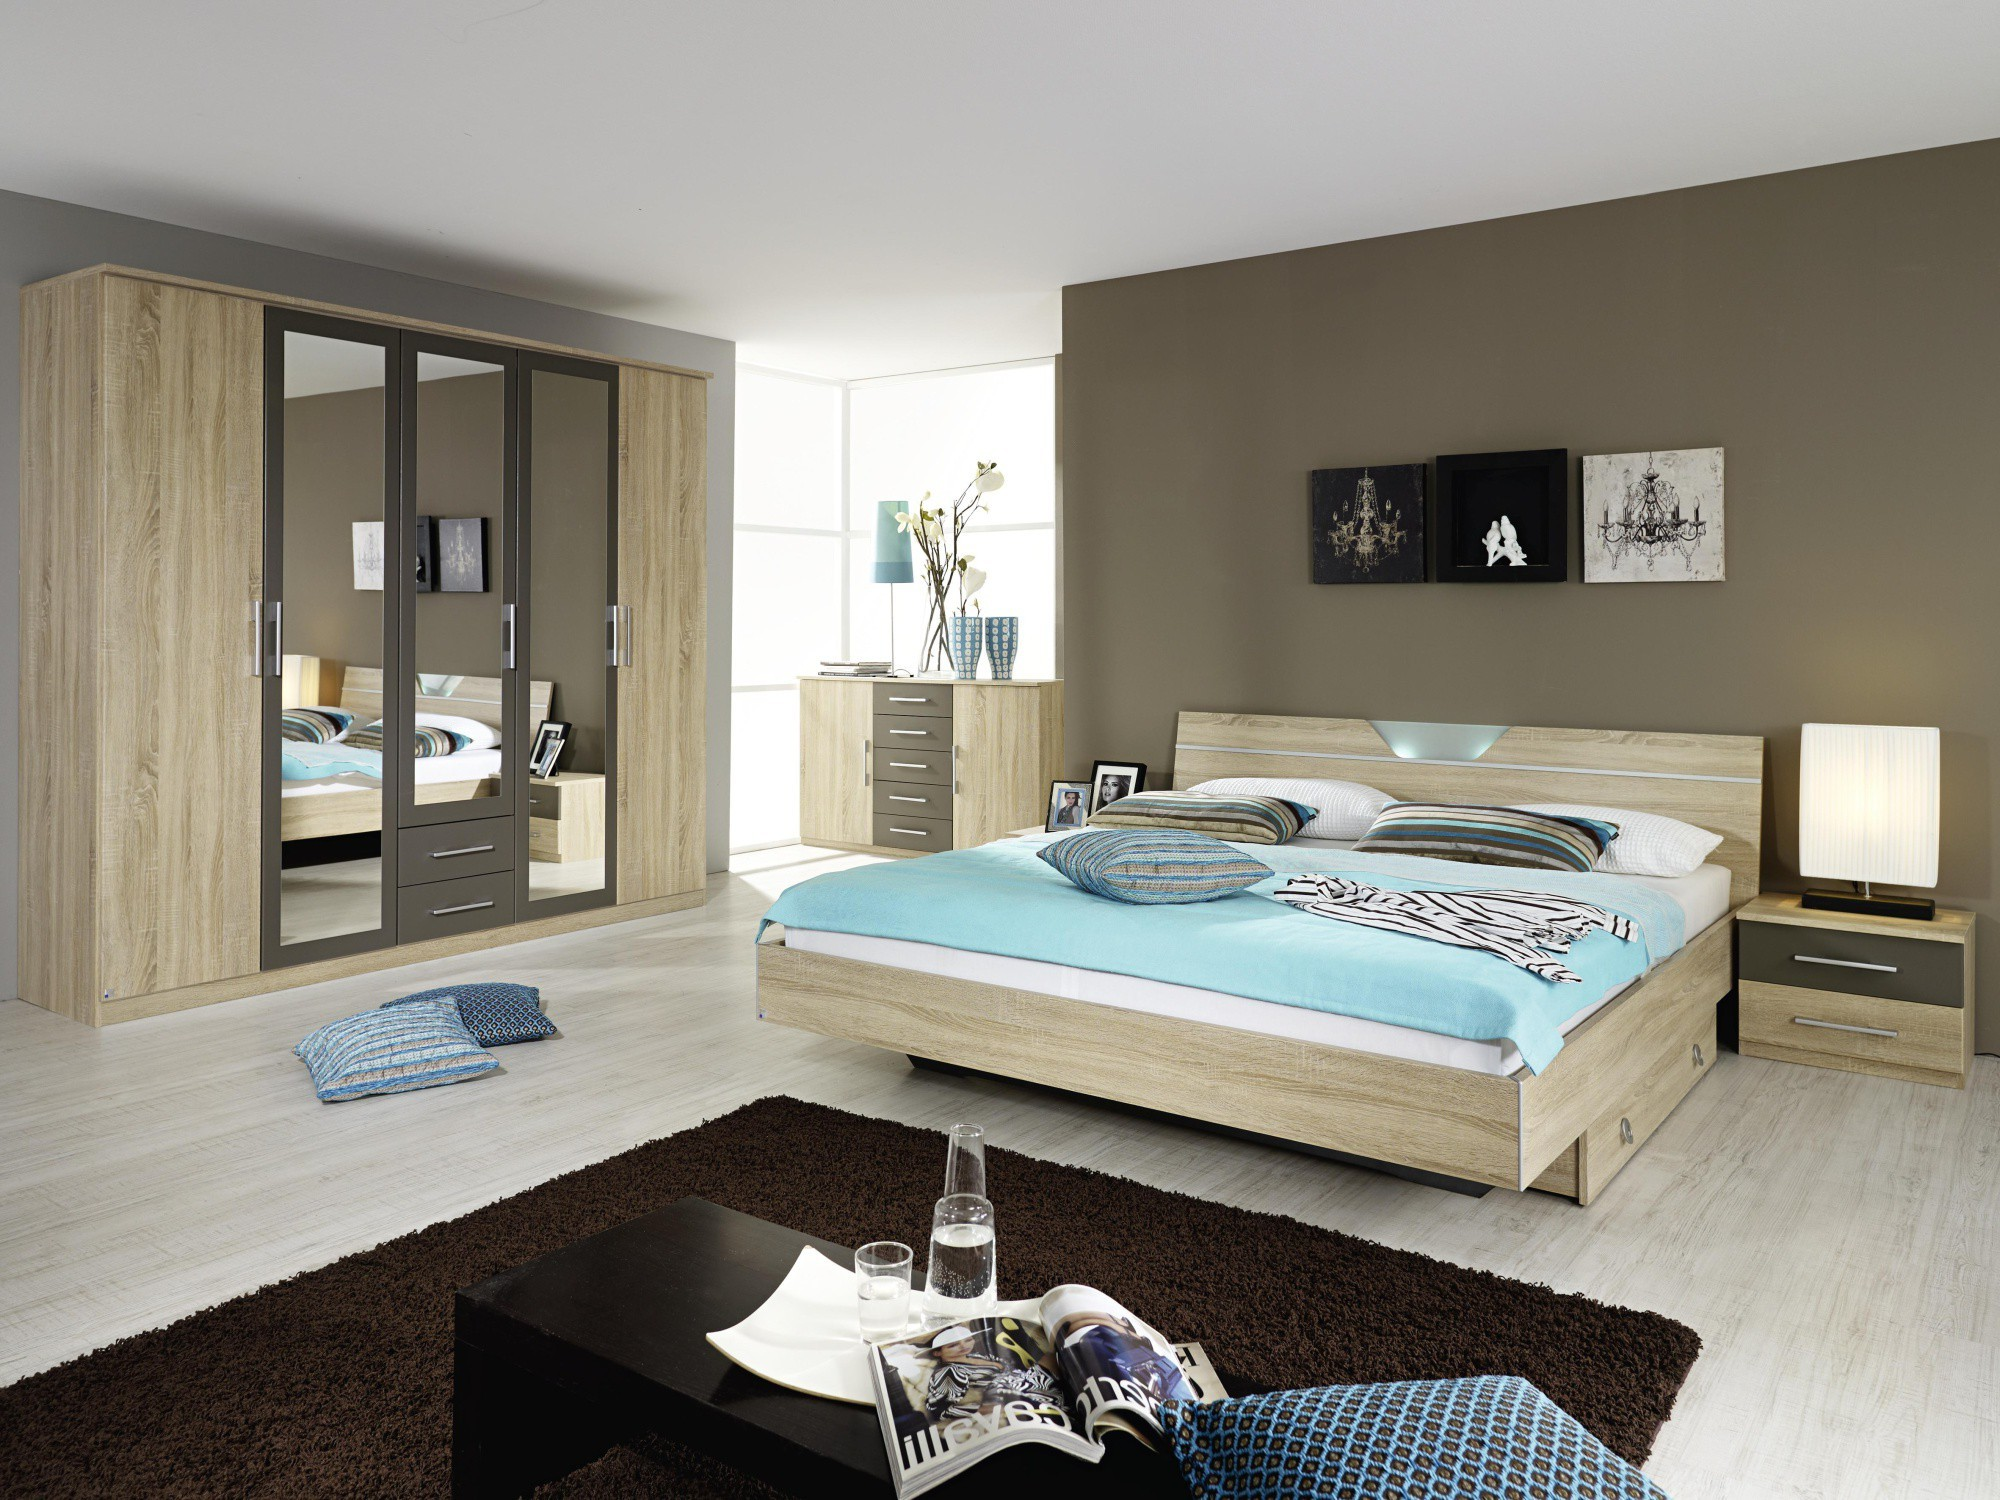 D coration chambre coucher adulte contemporaine chambre for Chambre a coucher contemporaine